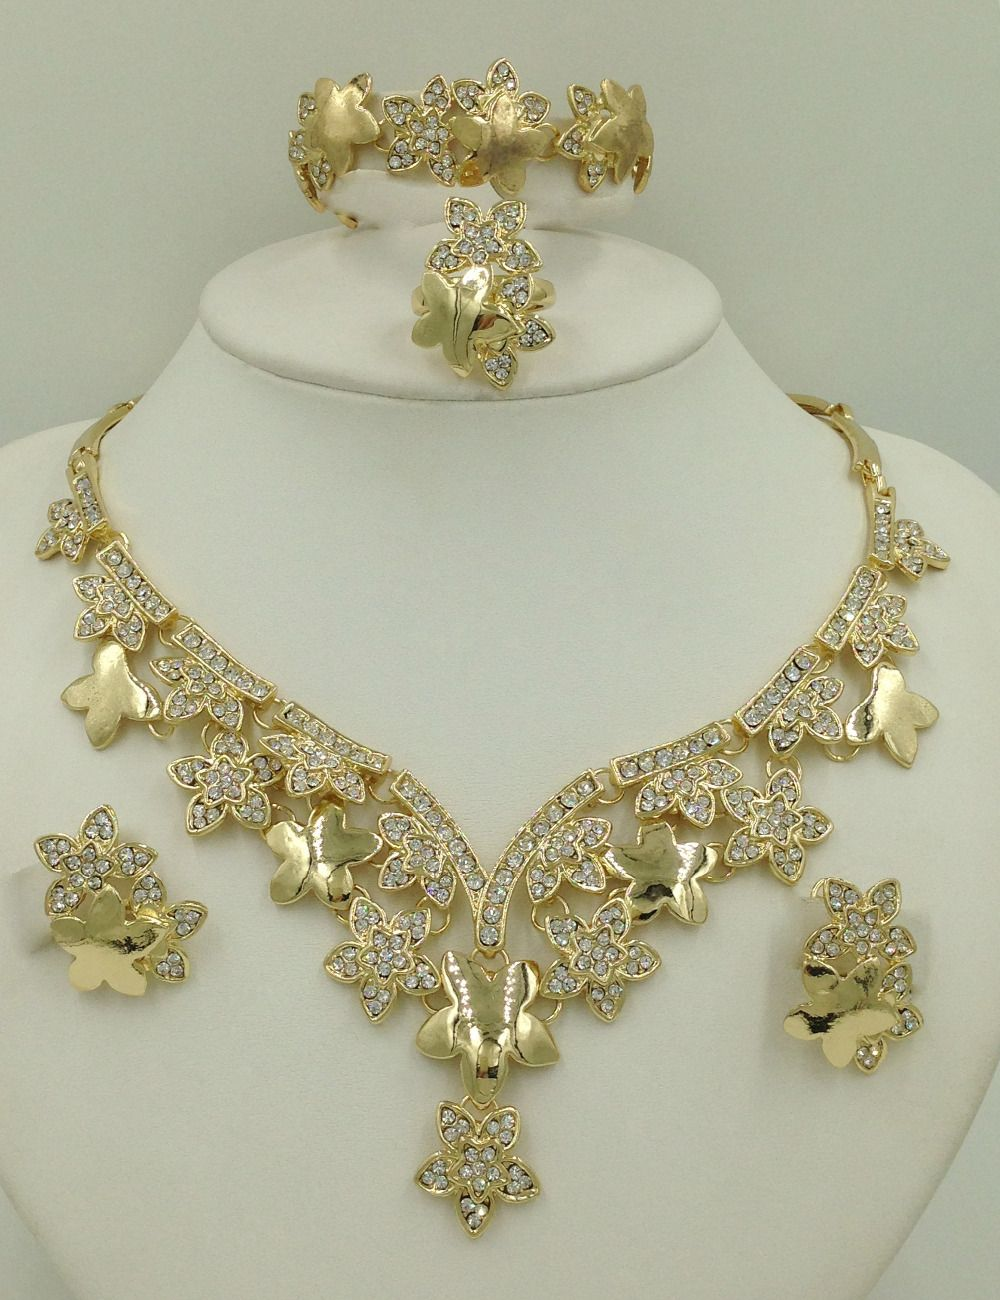 Find More Jewelry Sets Information about 2016 Latest Haute Couture Luxury Jewelry Sets Dubai Gold Plated Jewelry Sets Fashion 18K Costume Jewelry Shiny ... & Find More Jewelry Sets Information about 2016 Latest Haute Couture ...